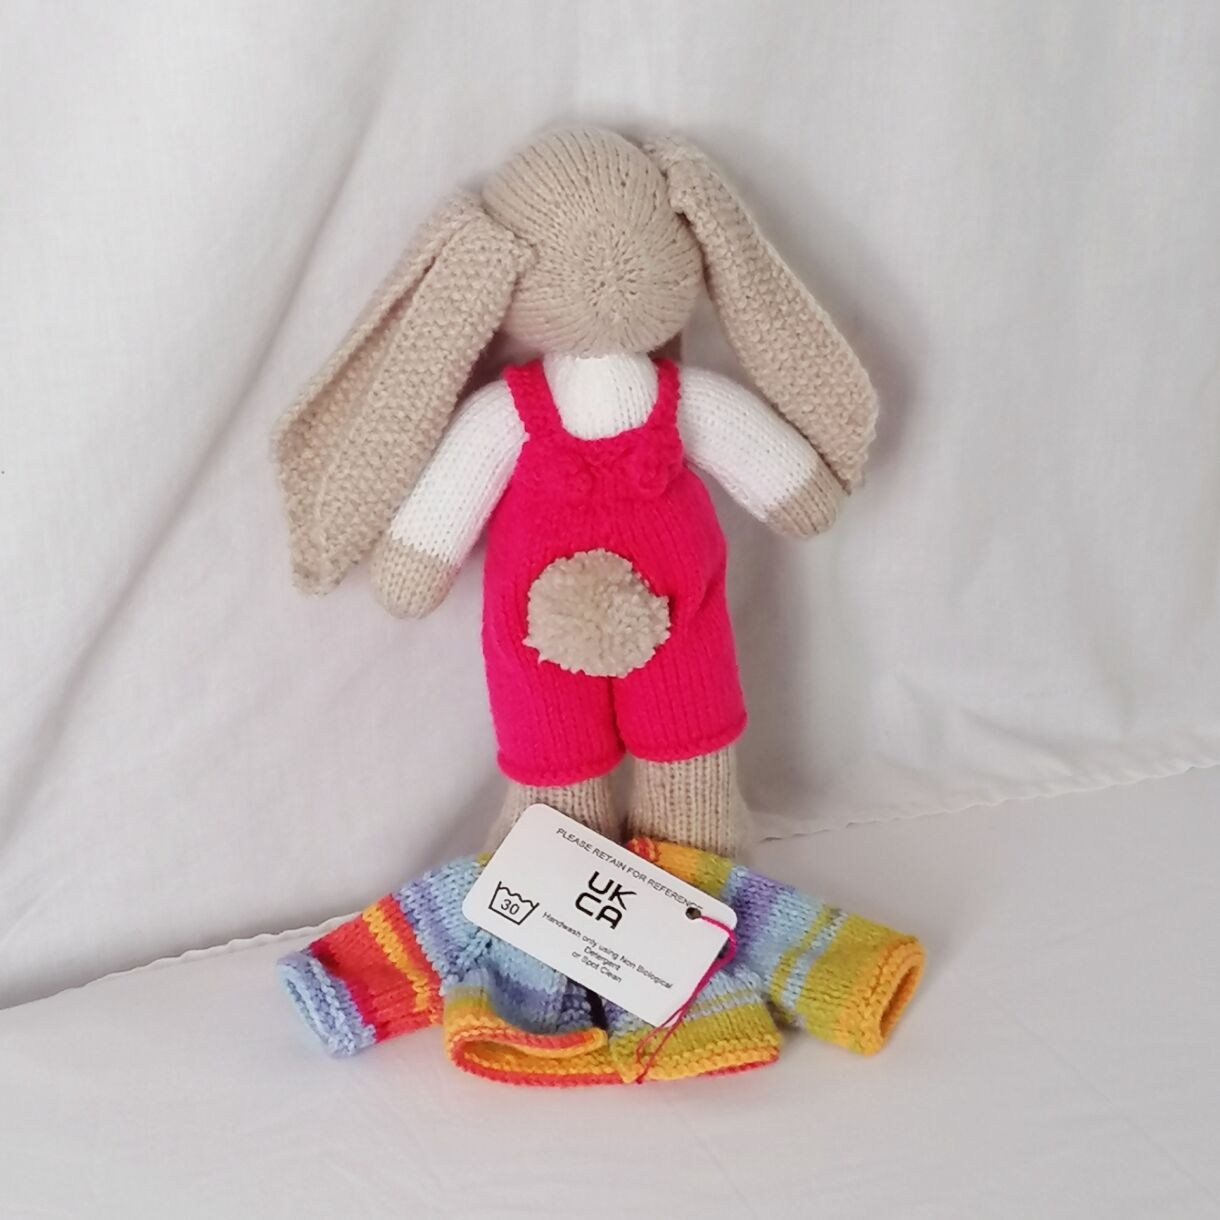 handknitted-rainbow-bunny-unique-gift-pink-back-no-jacket